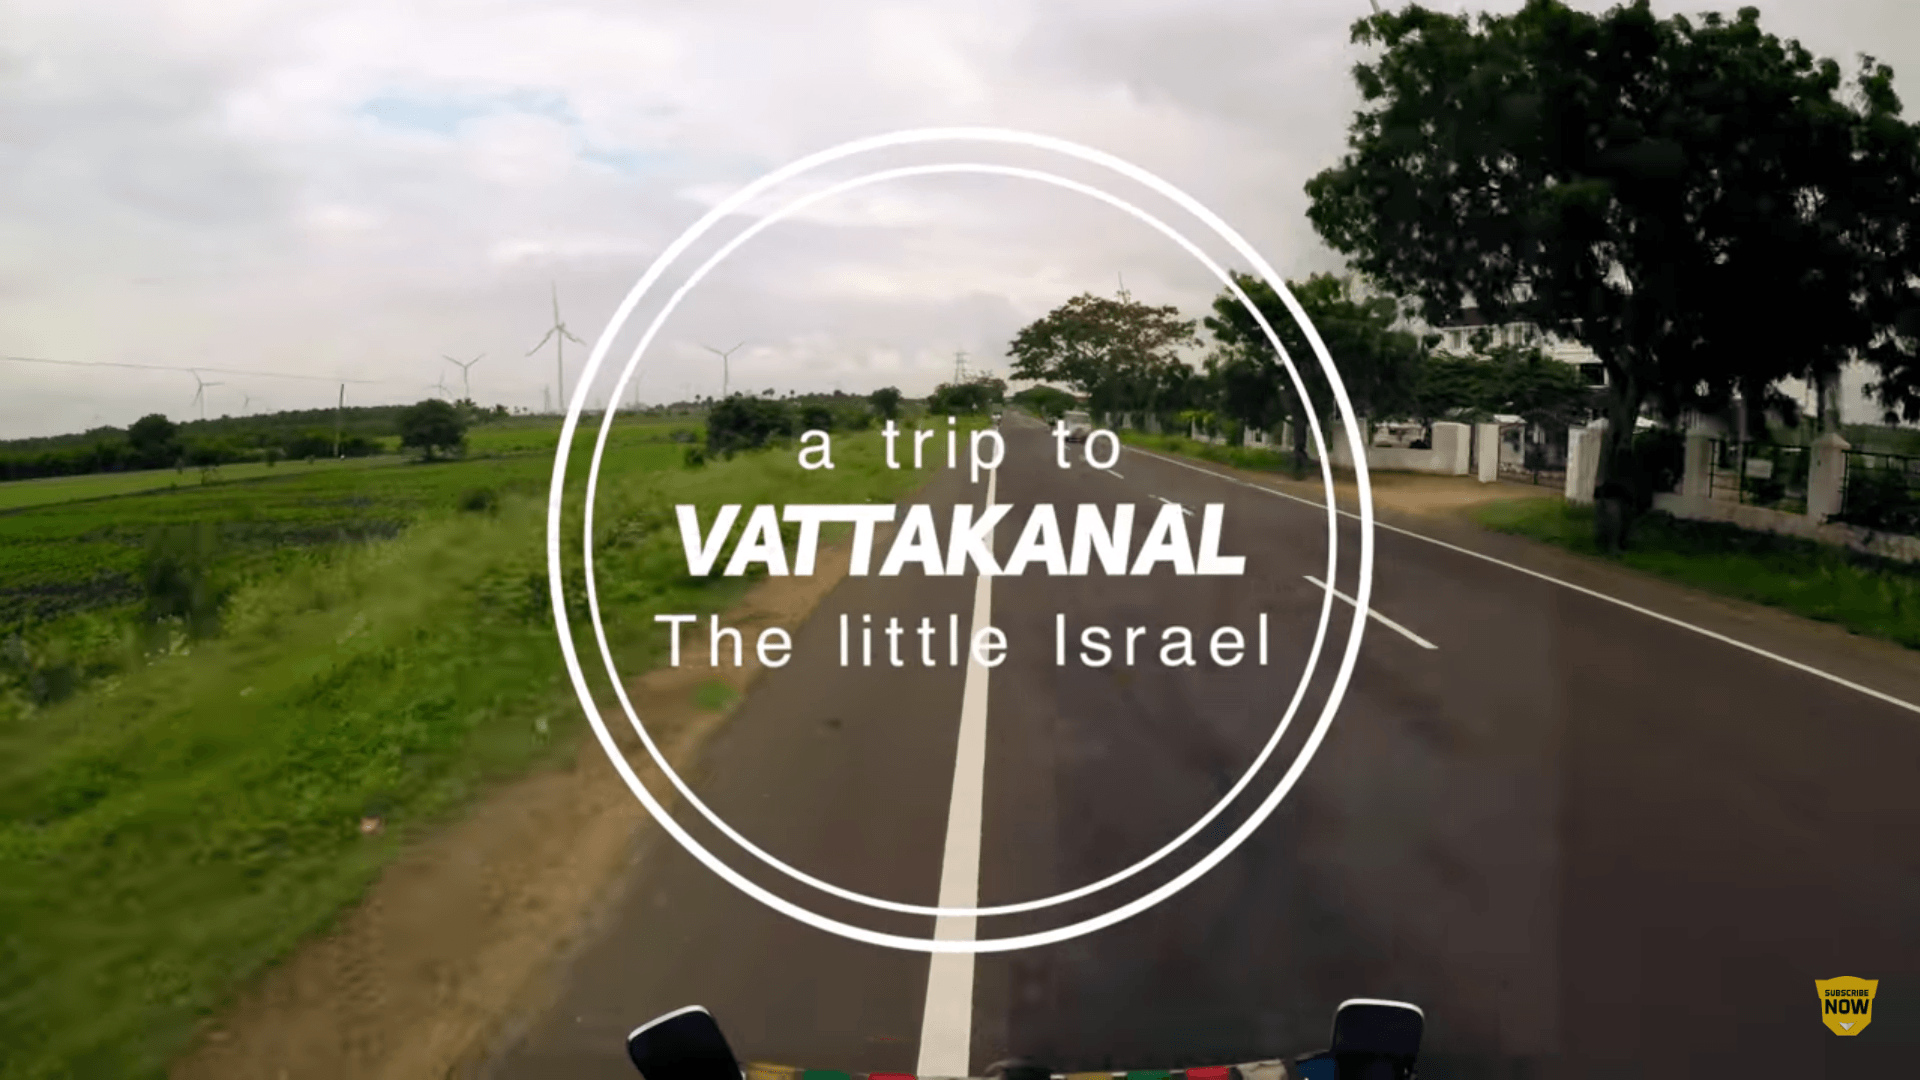 A Trip to Vattakanal from Coimbatore  – Couple Travel Video Part 1